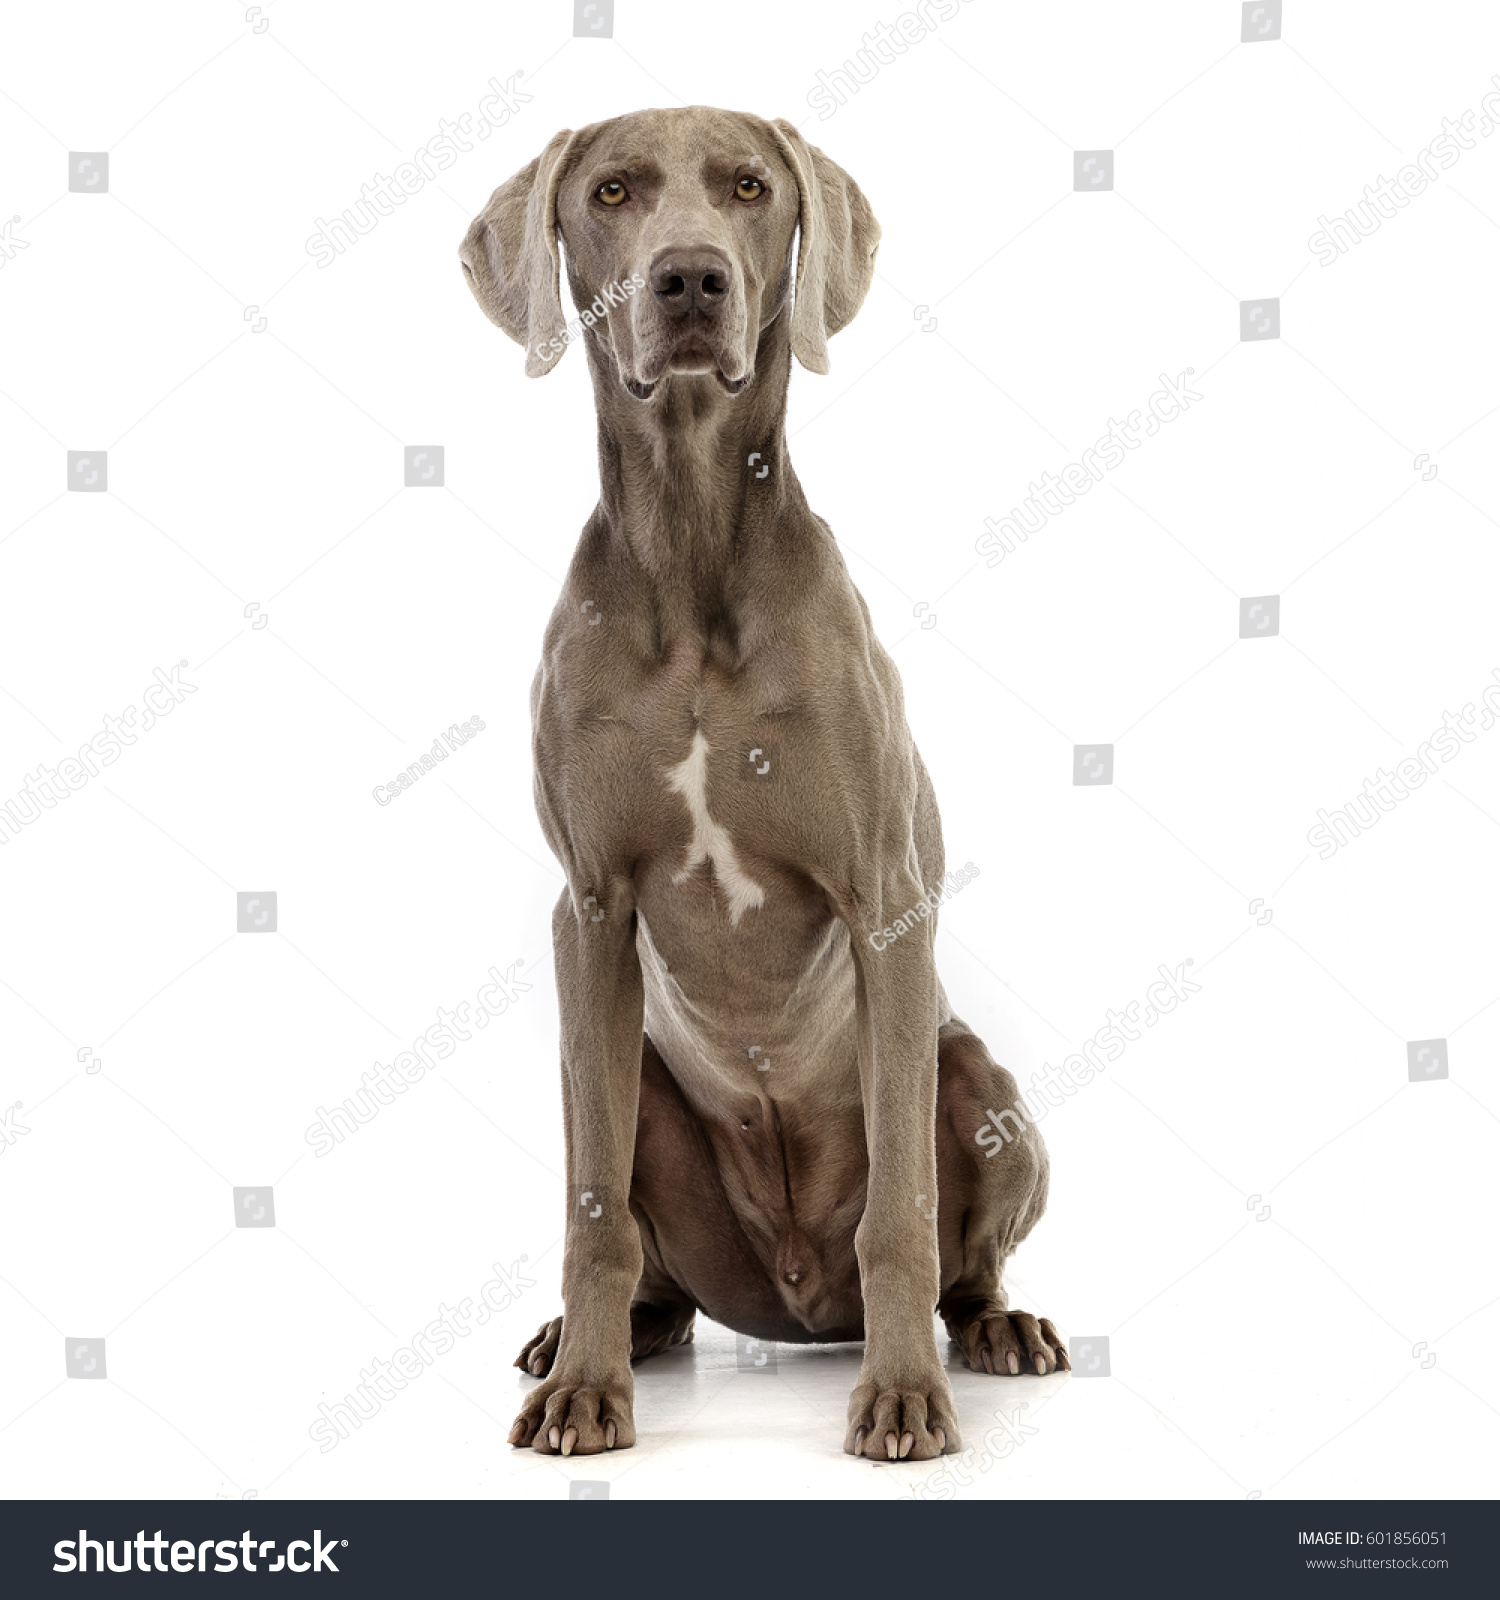 Studio shot of an adorable Weimaraner sitting on white background. #601856051